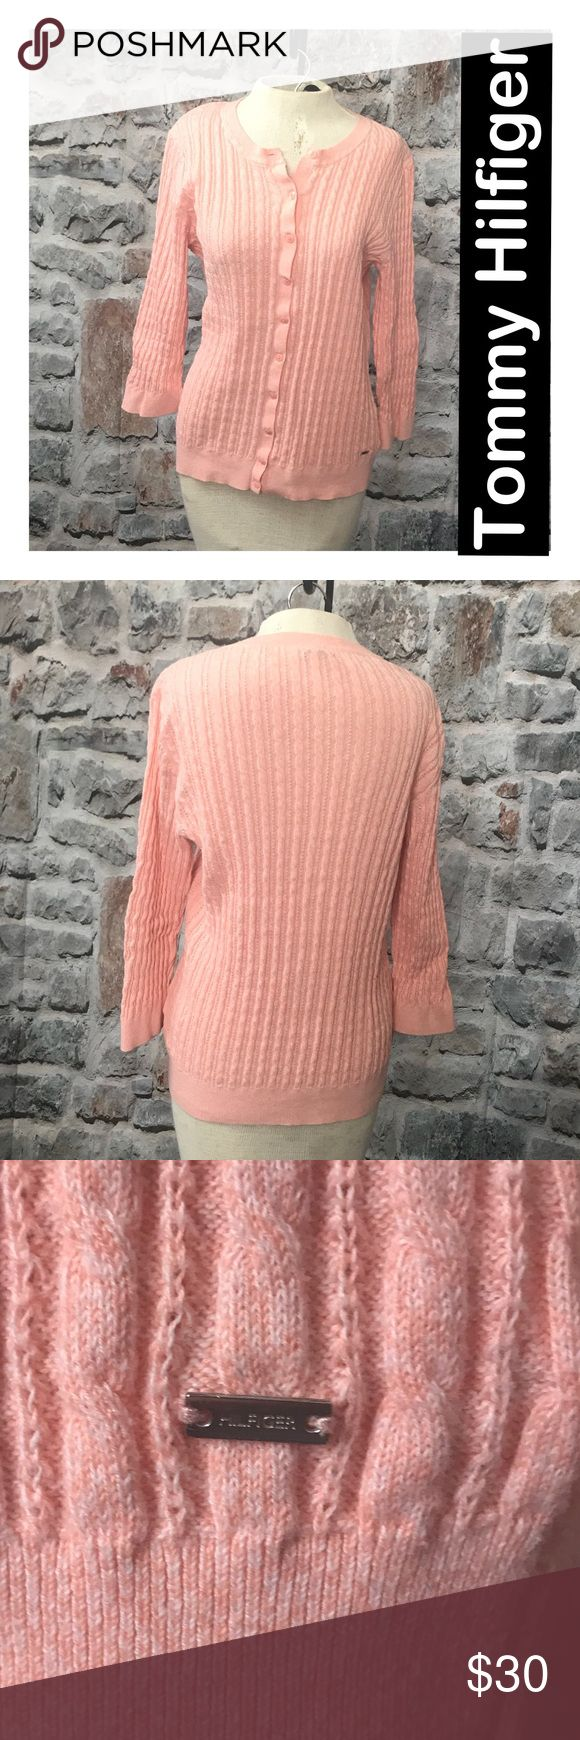 Tommy Hilfiger Beautiful Soft Pink Cardigan Tommy Hilfiger cardigan with delicate cabling. Button front. Hilfiger on metal tag. Excellent smoke free condition. Tommy Hilfiger Sweaters Cardigans